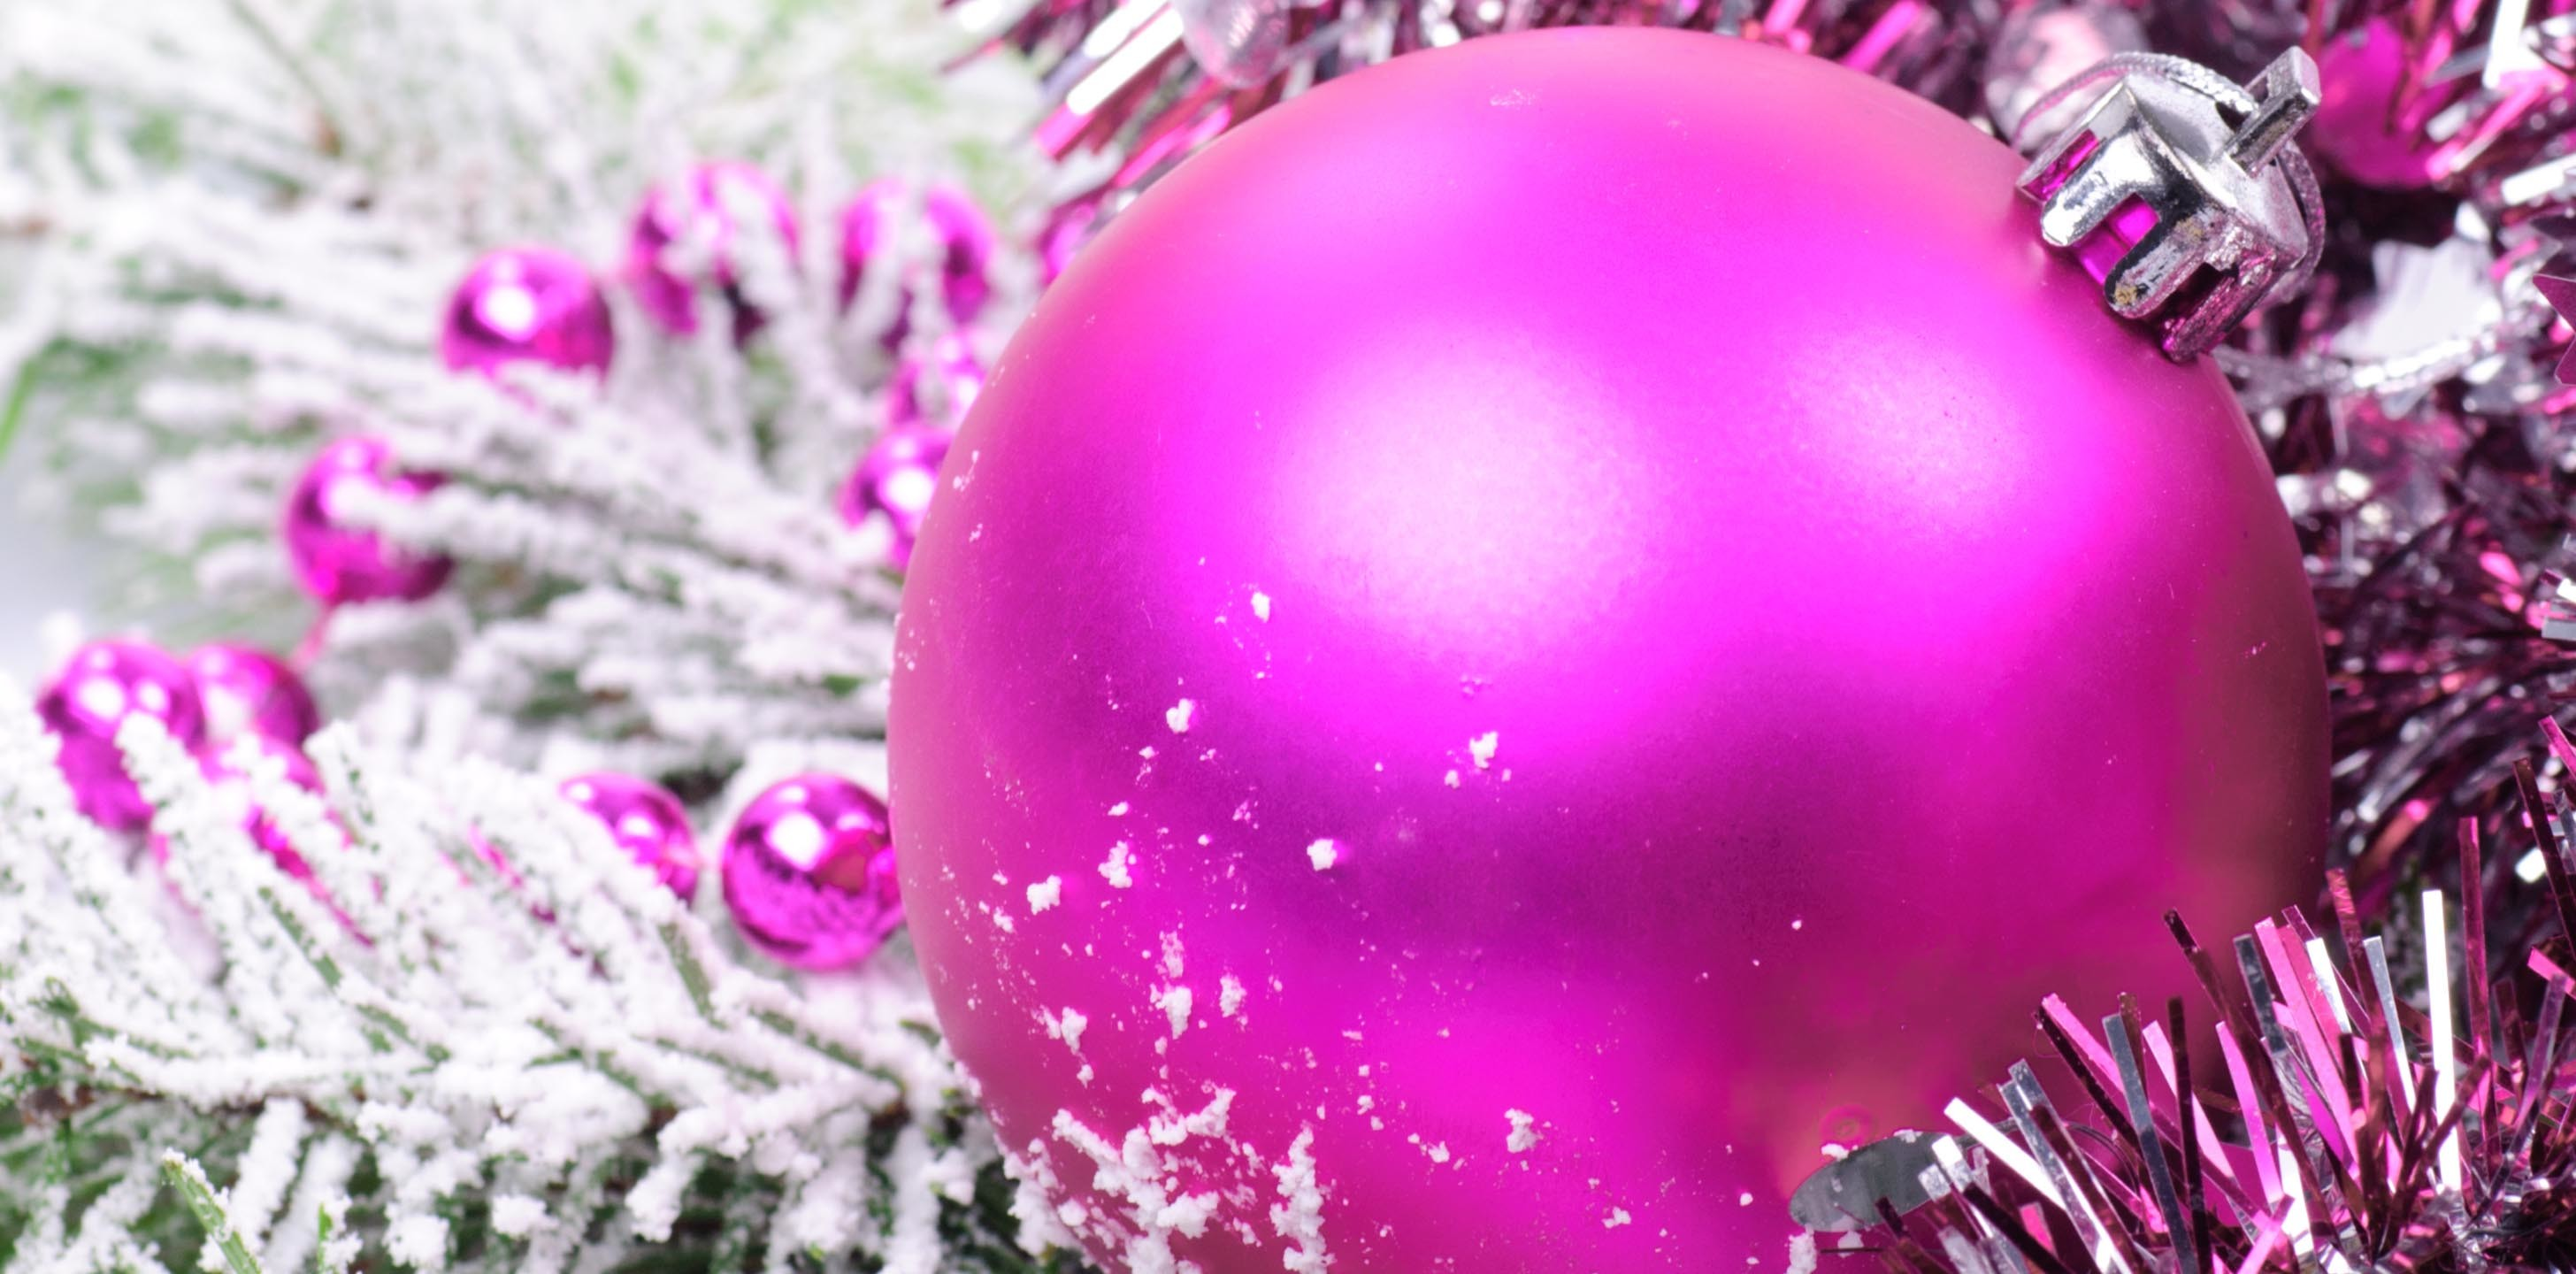 2912x1440 pink christmas wallpaper background - BinFind Search Engine